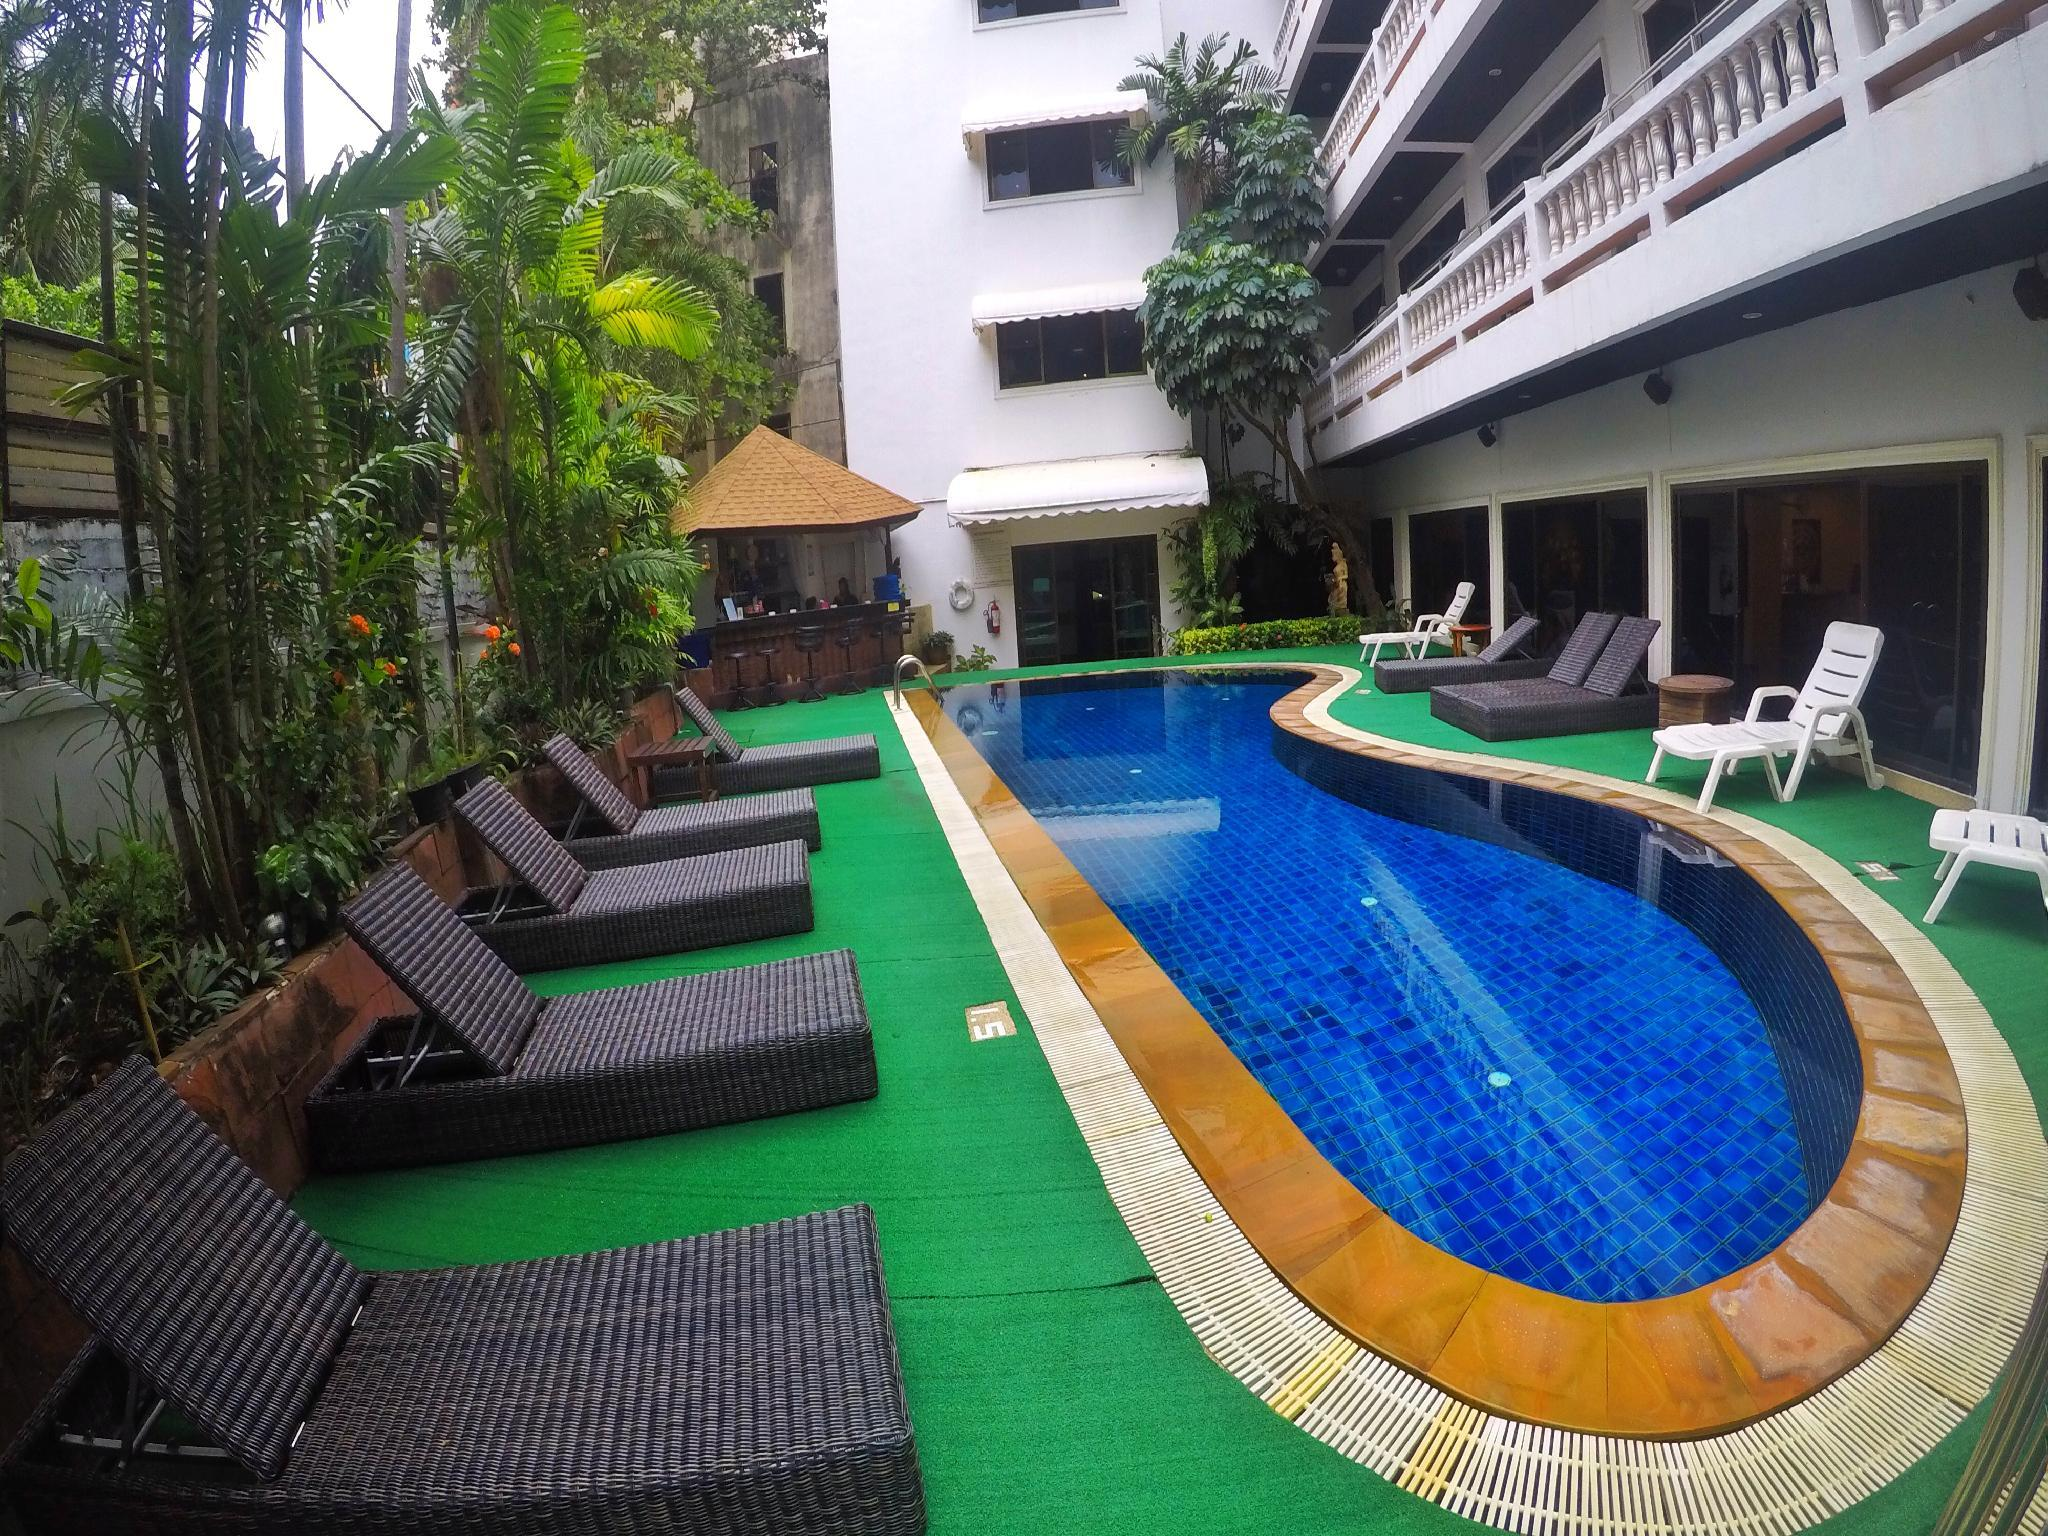 Pool View 2 Bedroom Apt in center of Patong #b2